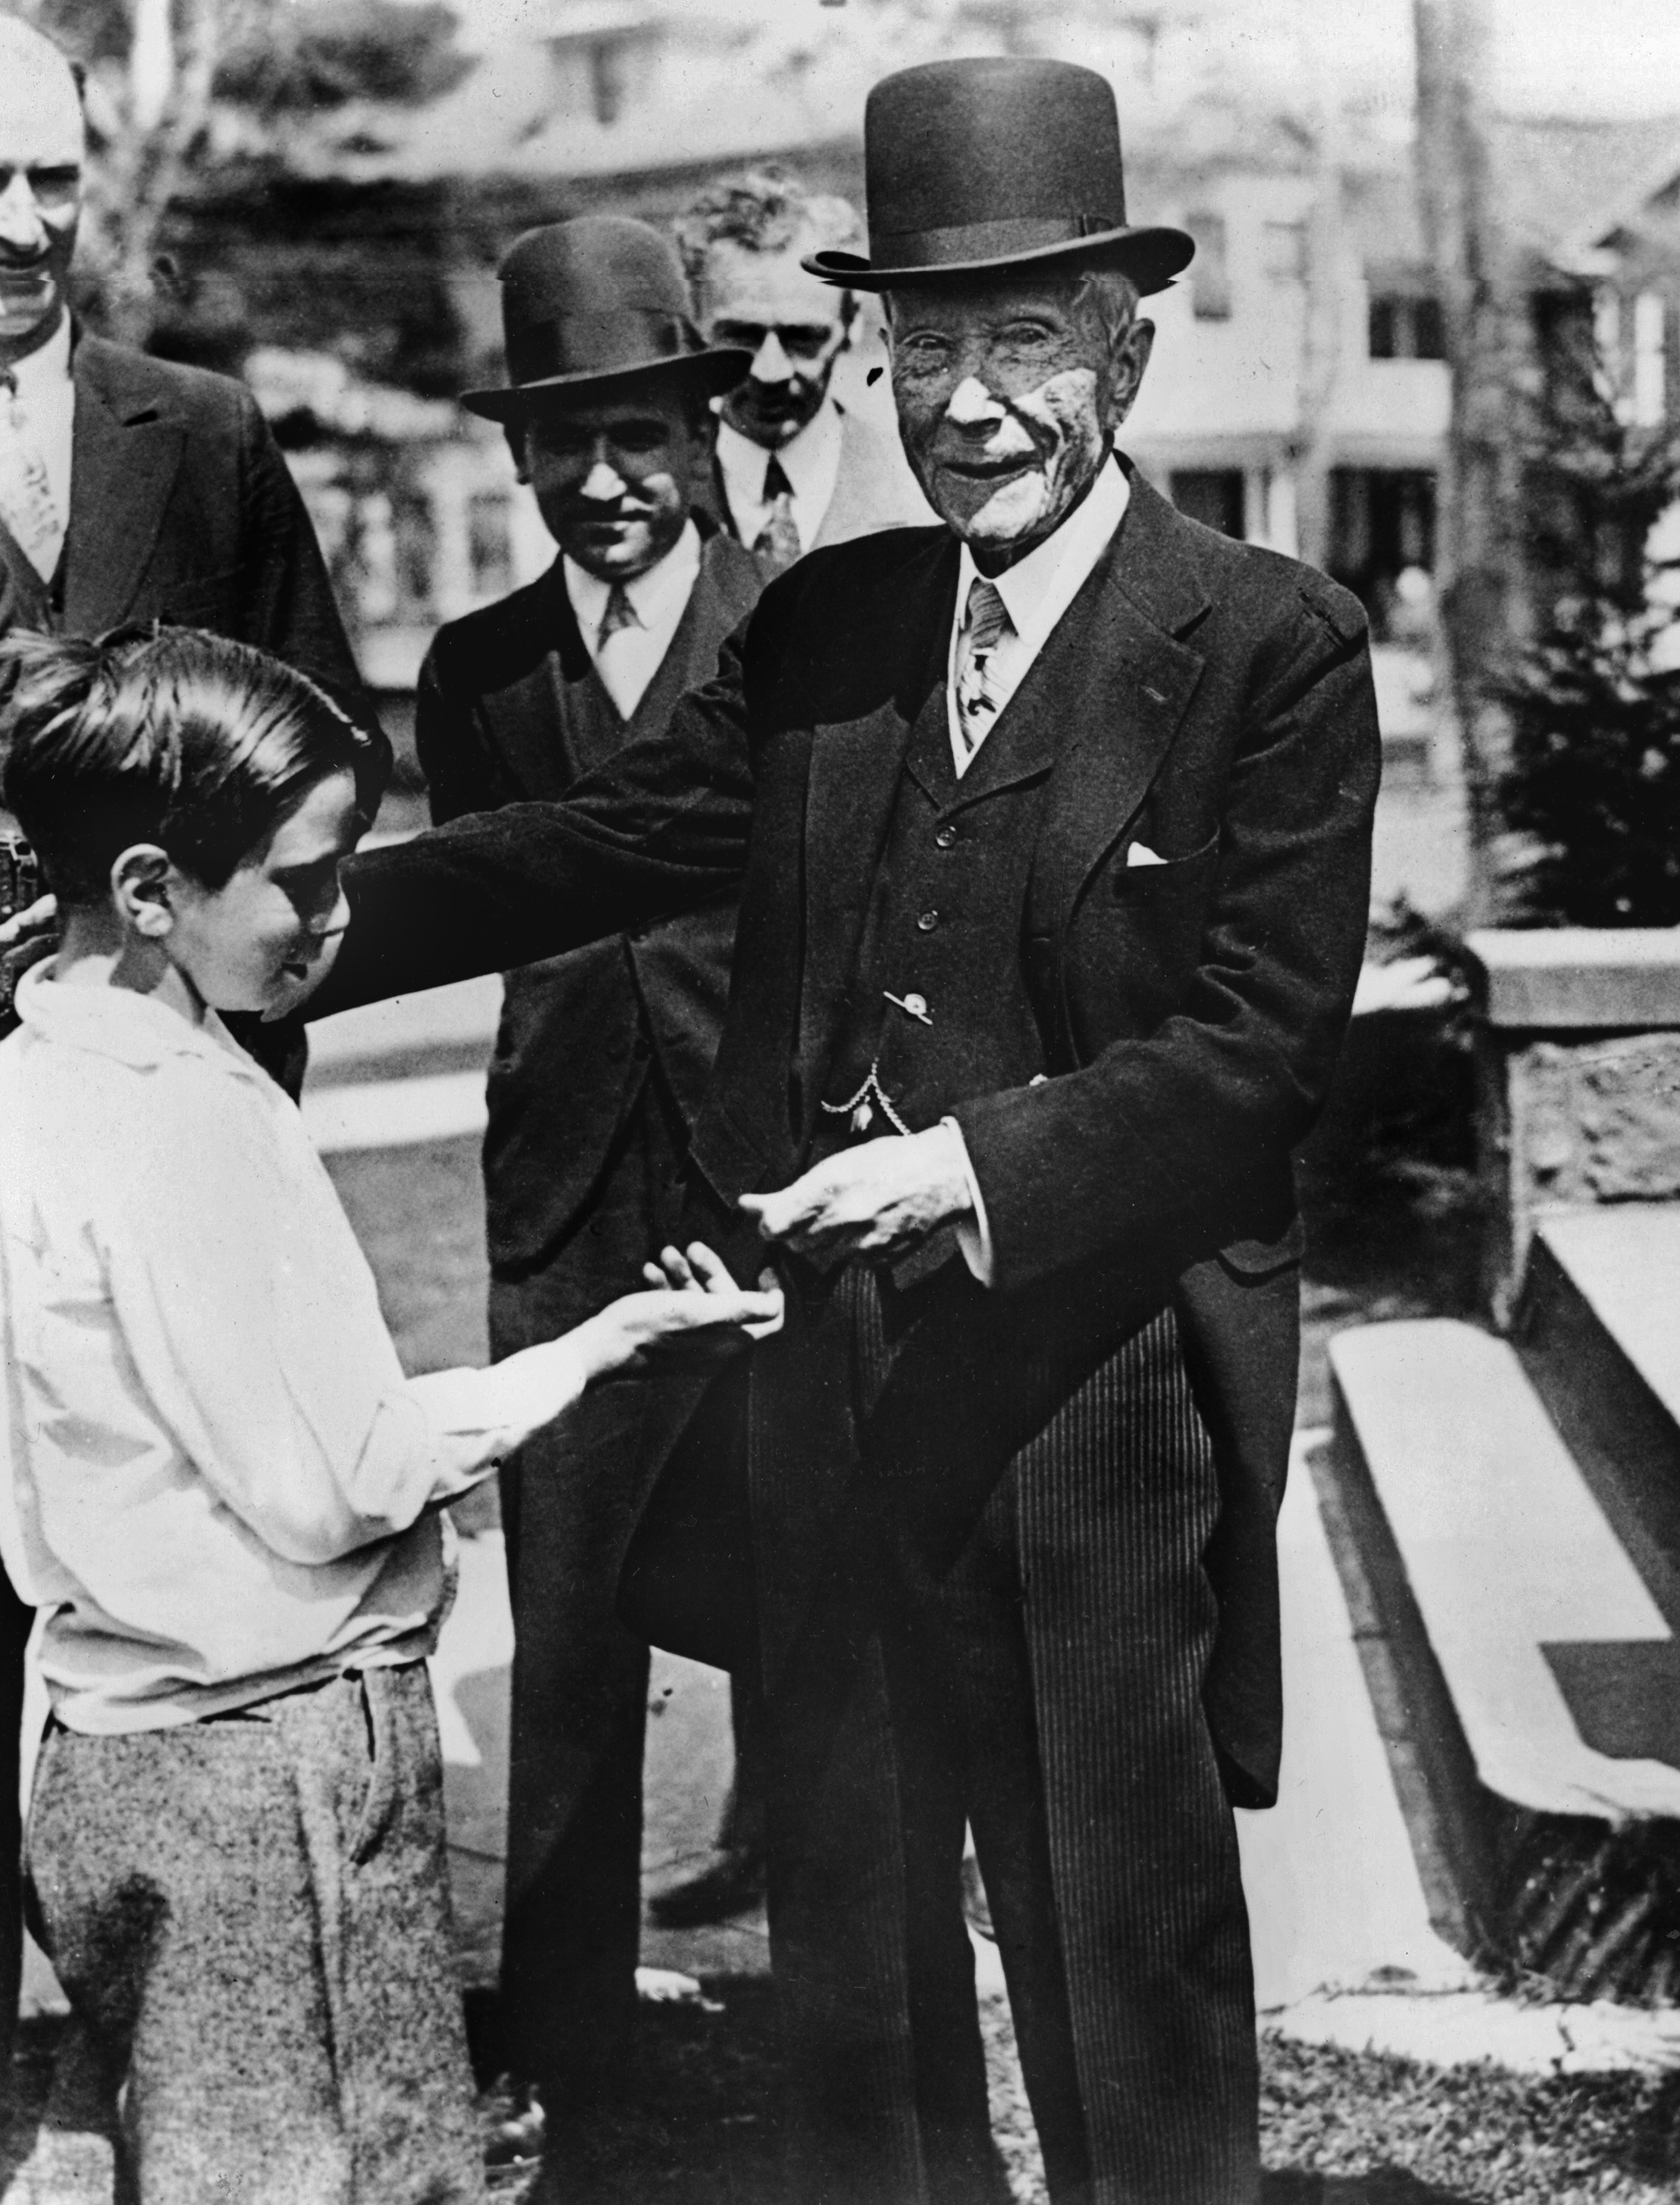 a biography of john d rockefeller John d rockefeller, jr was a famous american businessman known for his philanthropic works read more about the life of this influential businessman in the following article.